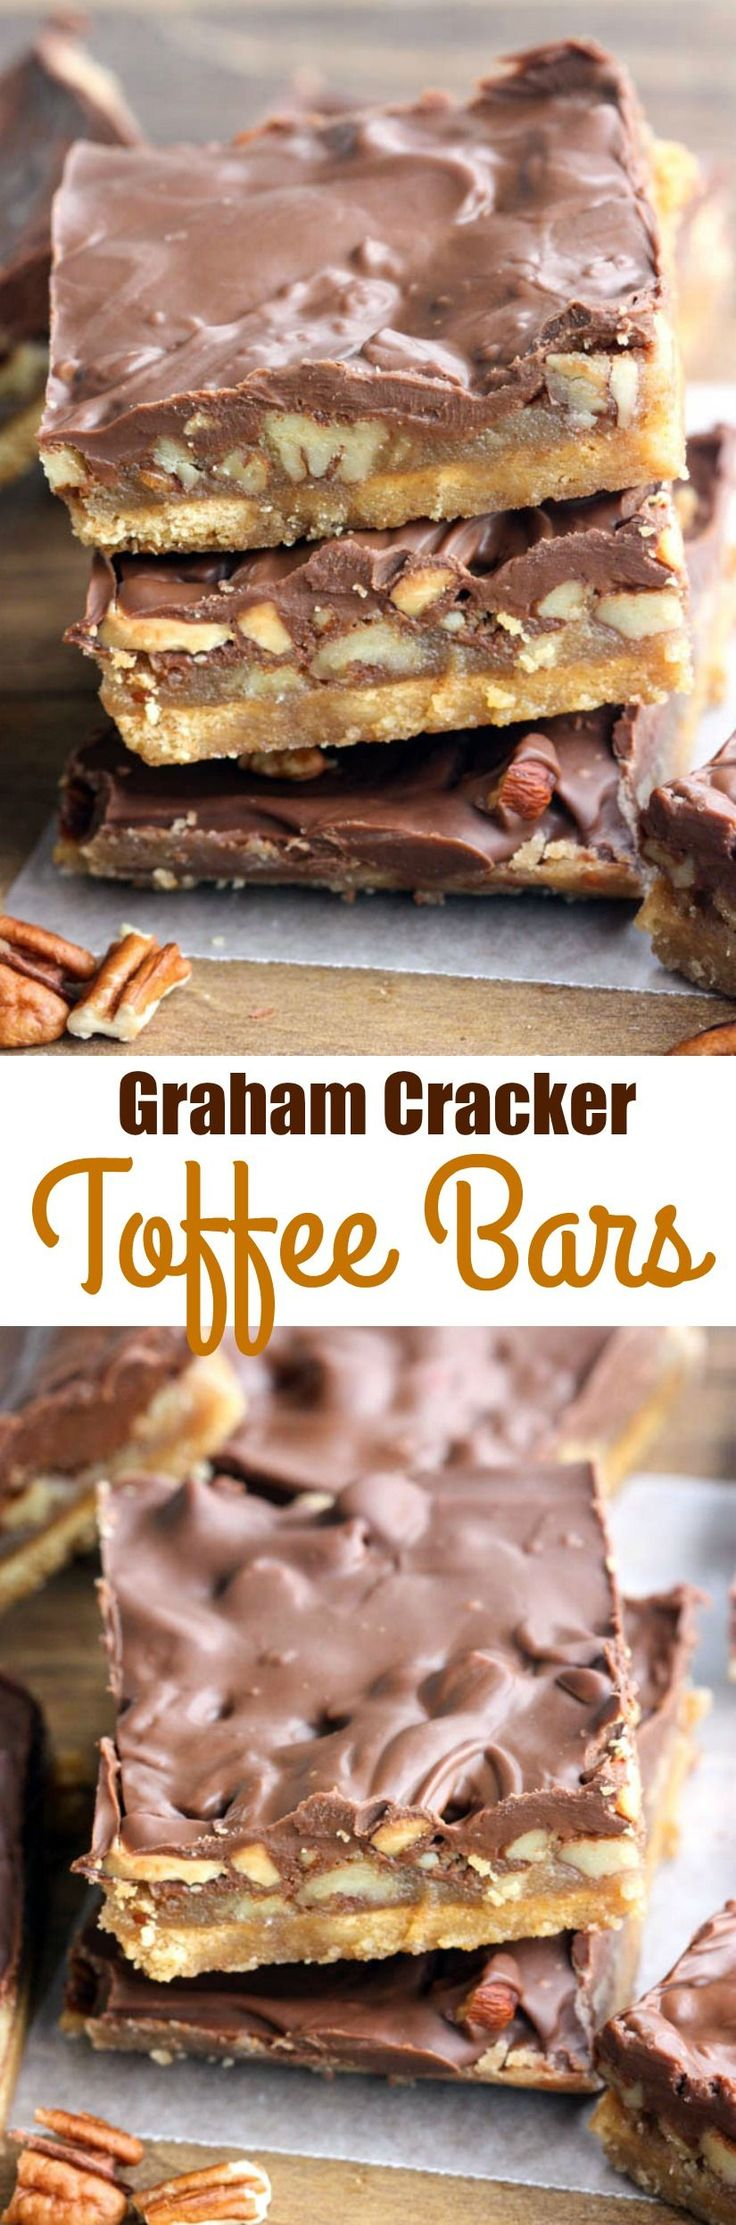 Graham Cracker Toffee Bars - Only 5 ingredients